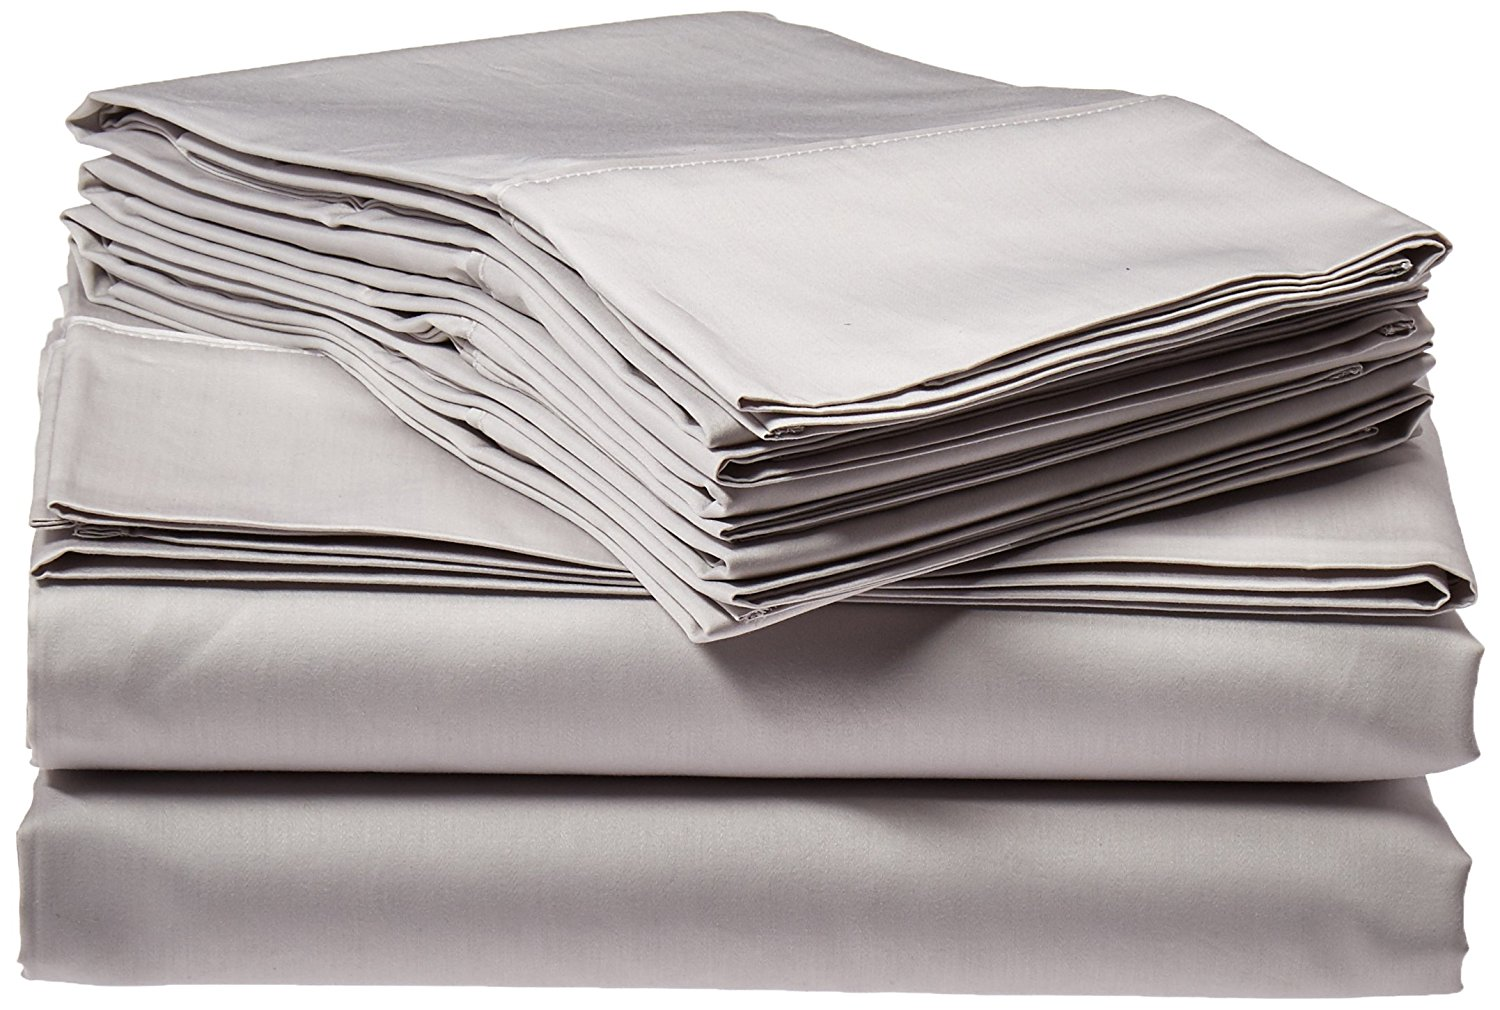 Image of Tribeca Living 600 thread count Egyptian cotton sheets - Best 600 Thread Count Sheets